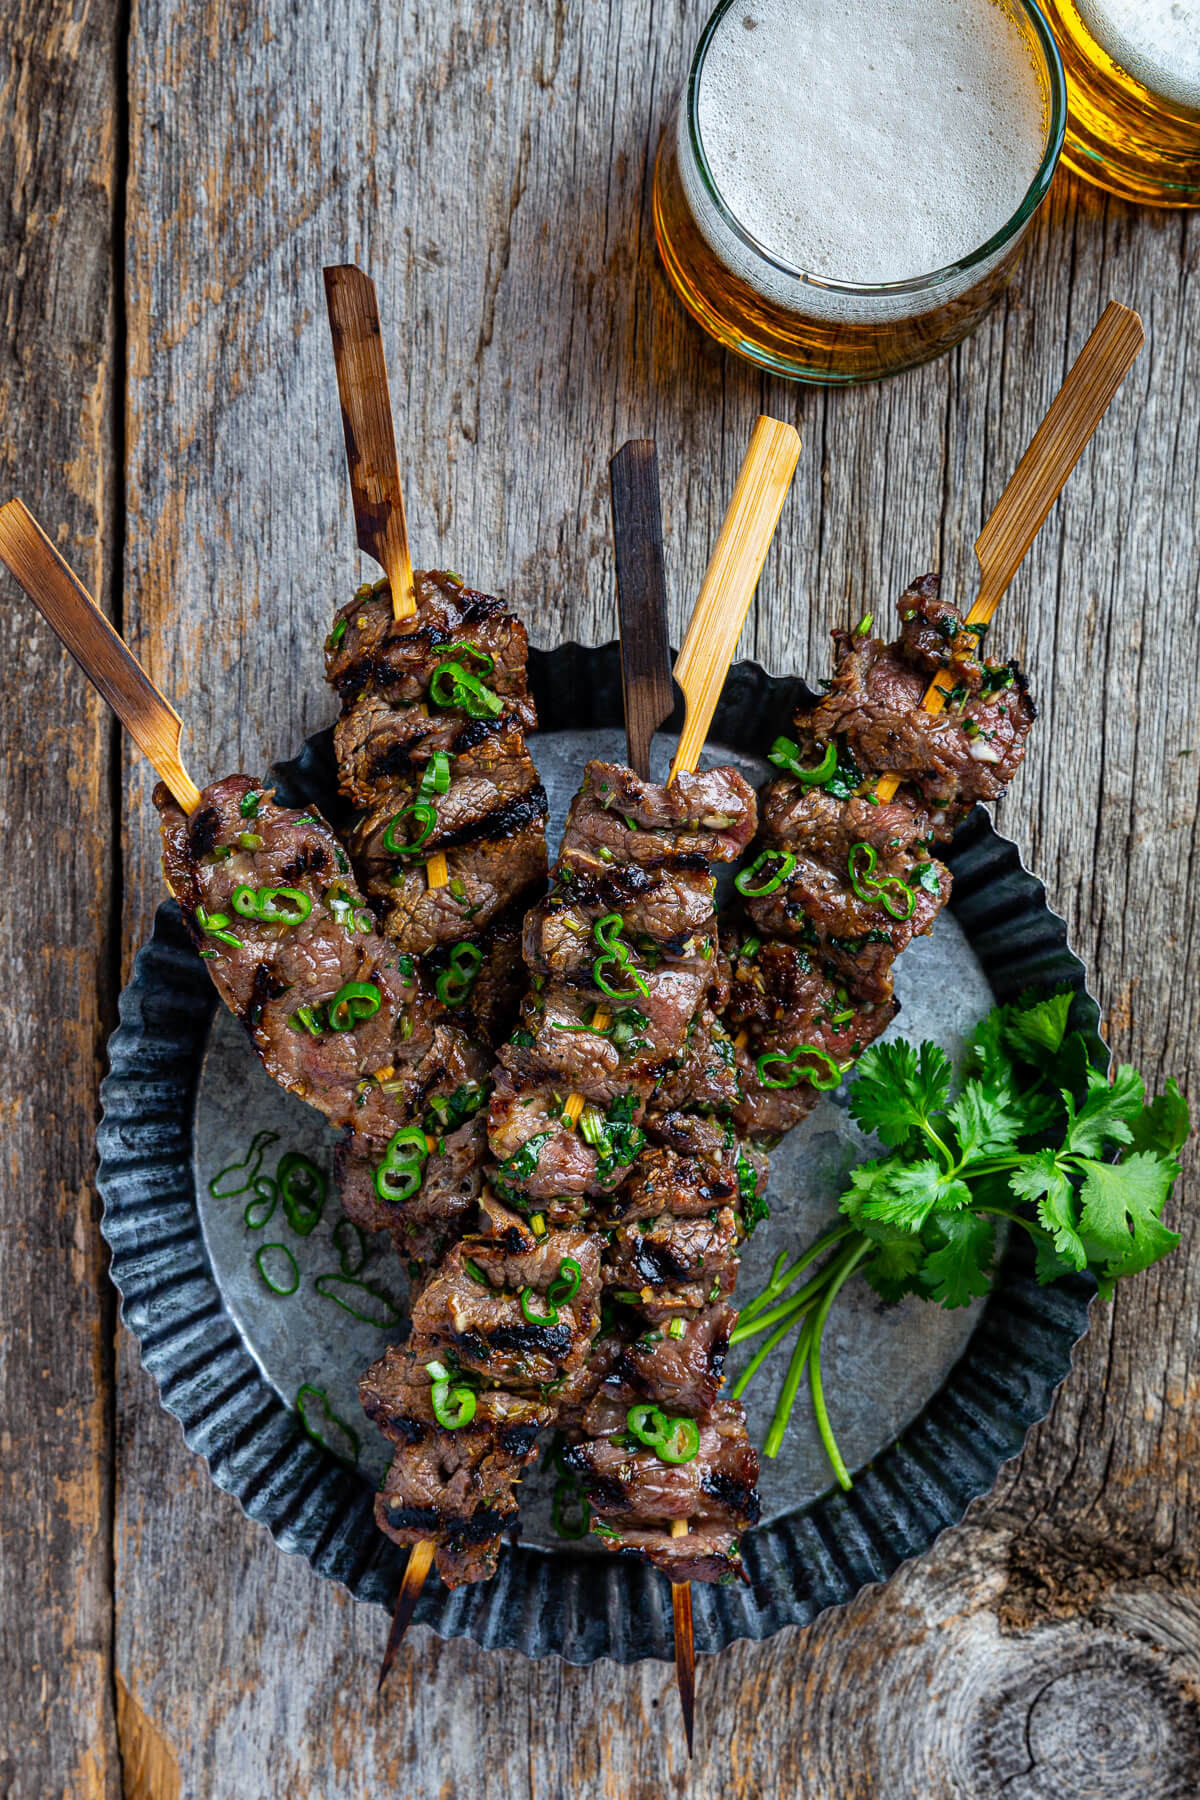 Overhead view of several grilled beef skewers on a metal serving dish.